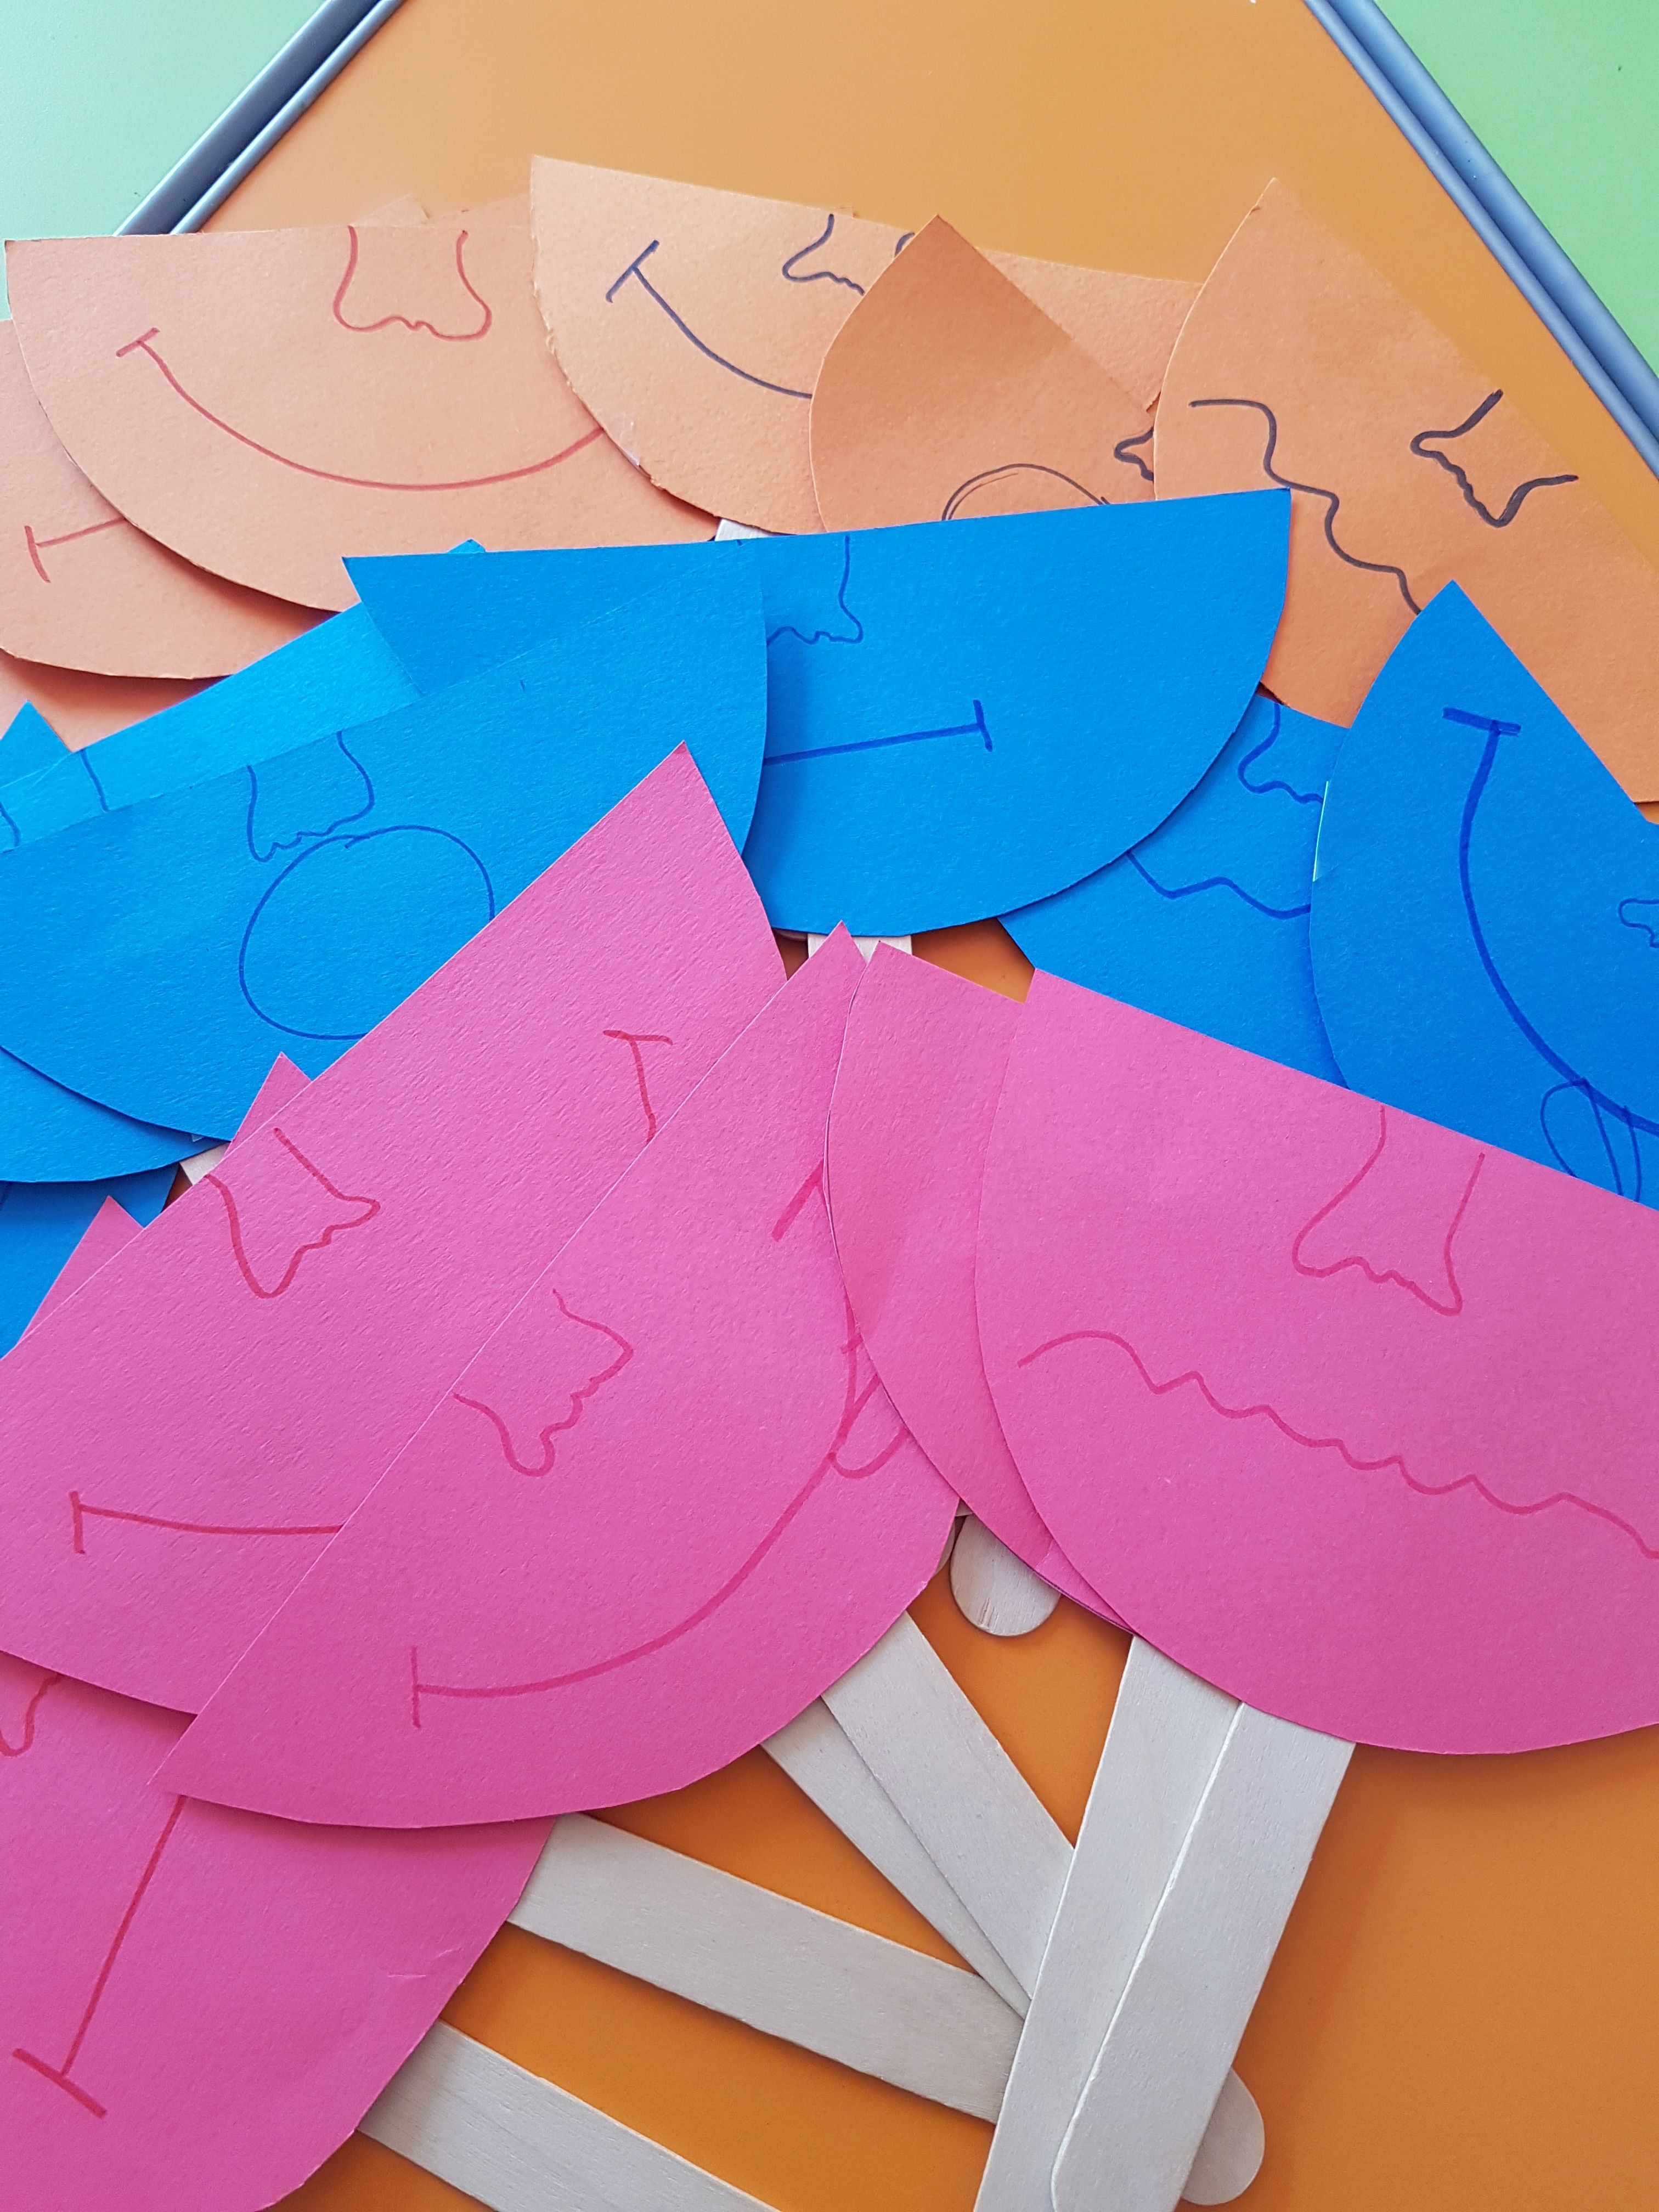 Emotion Masks For Kids